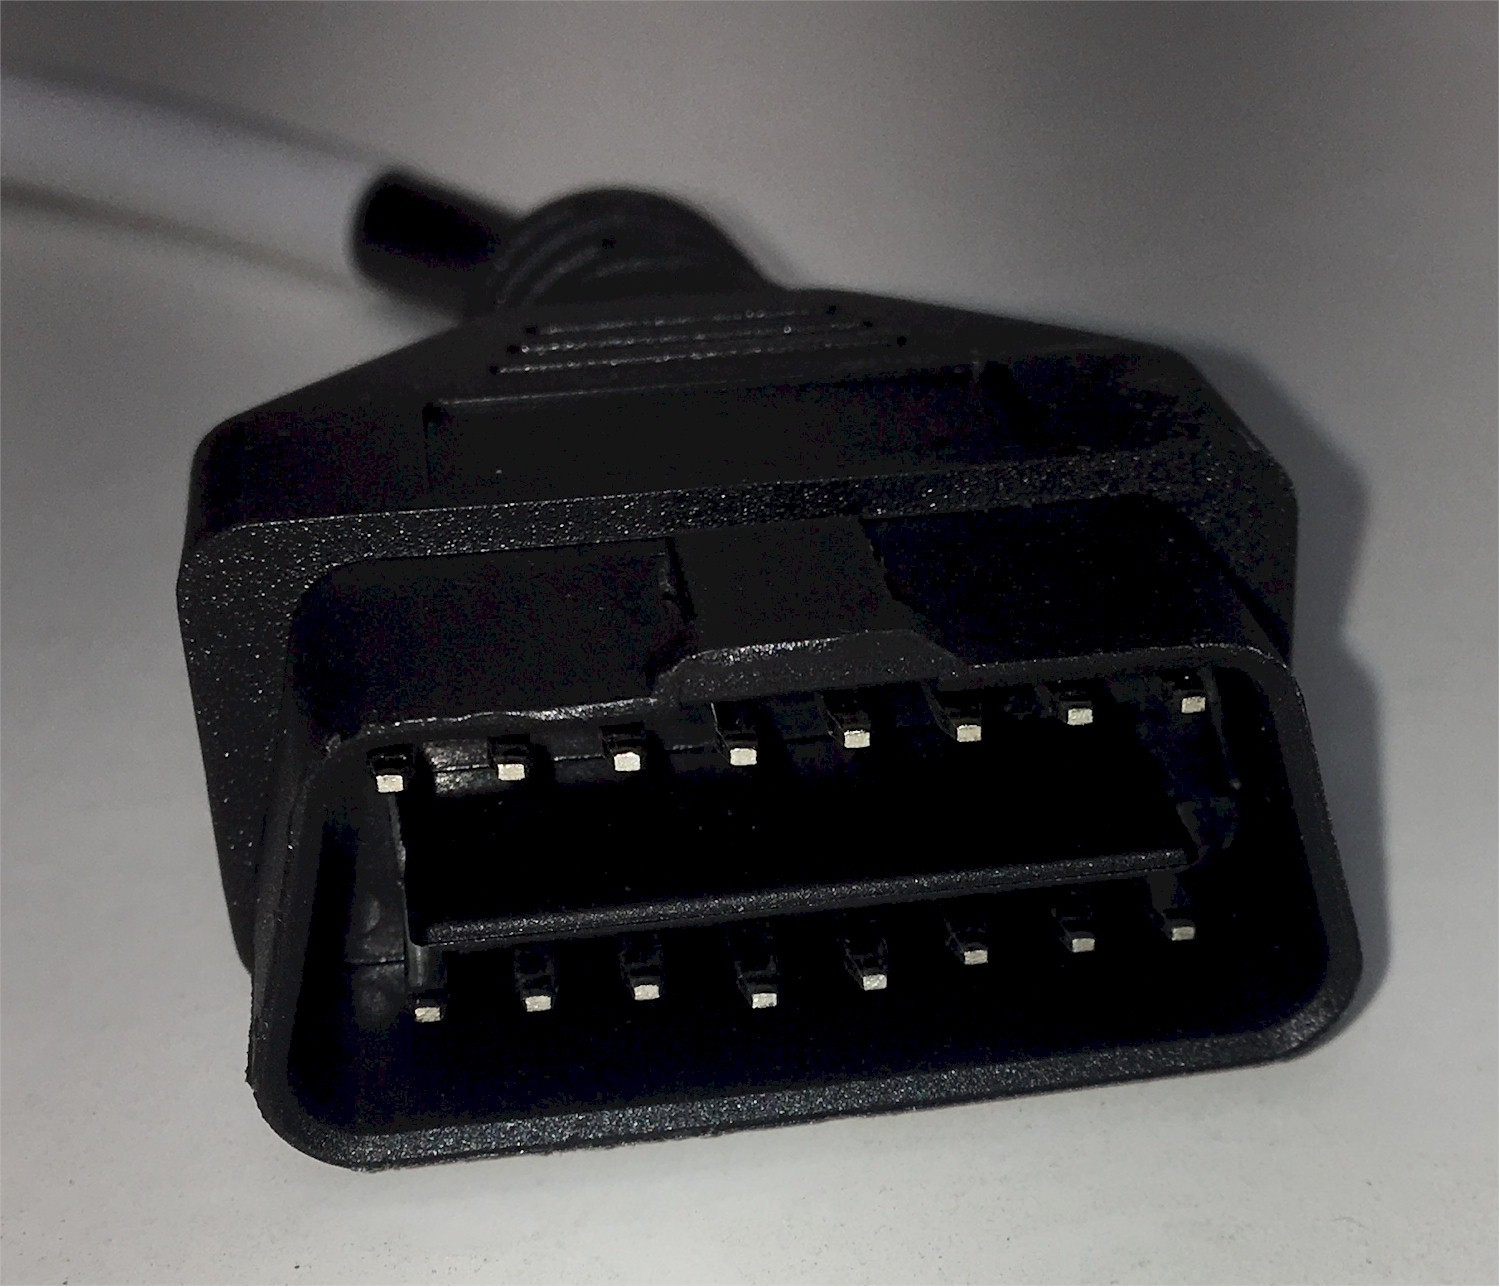 Obd Diagnostics Inc Obd2 All In One Scan Tool W Usb J1939 Wiring Volvo Style Male To Adapter